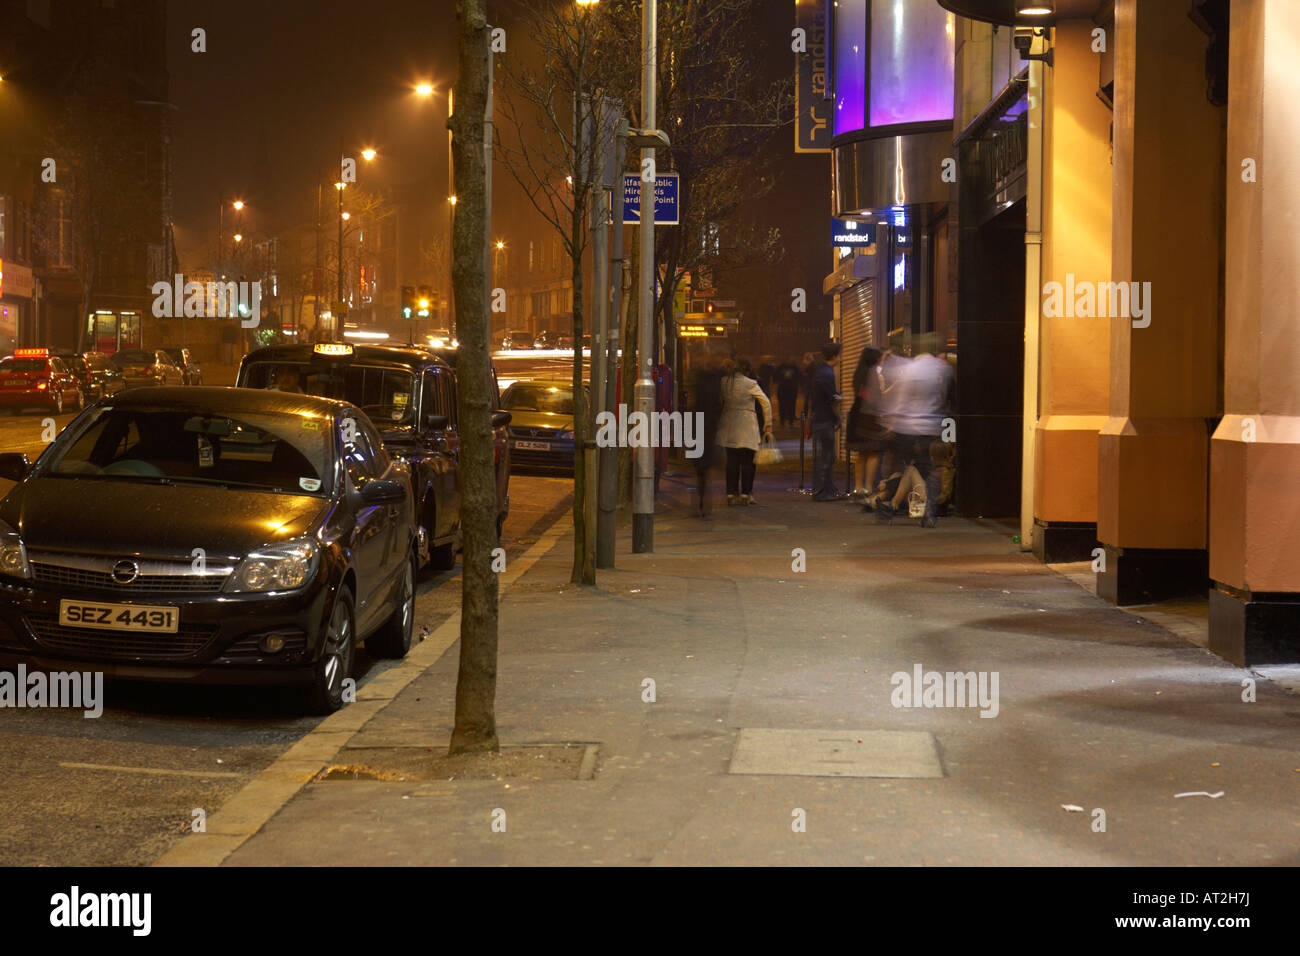 people nightclubbers queuing on city street to get into pubs and clubs on bradbury place belfast - Stock Image